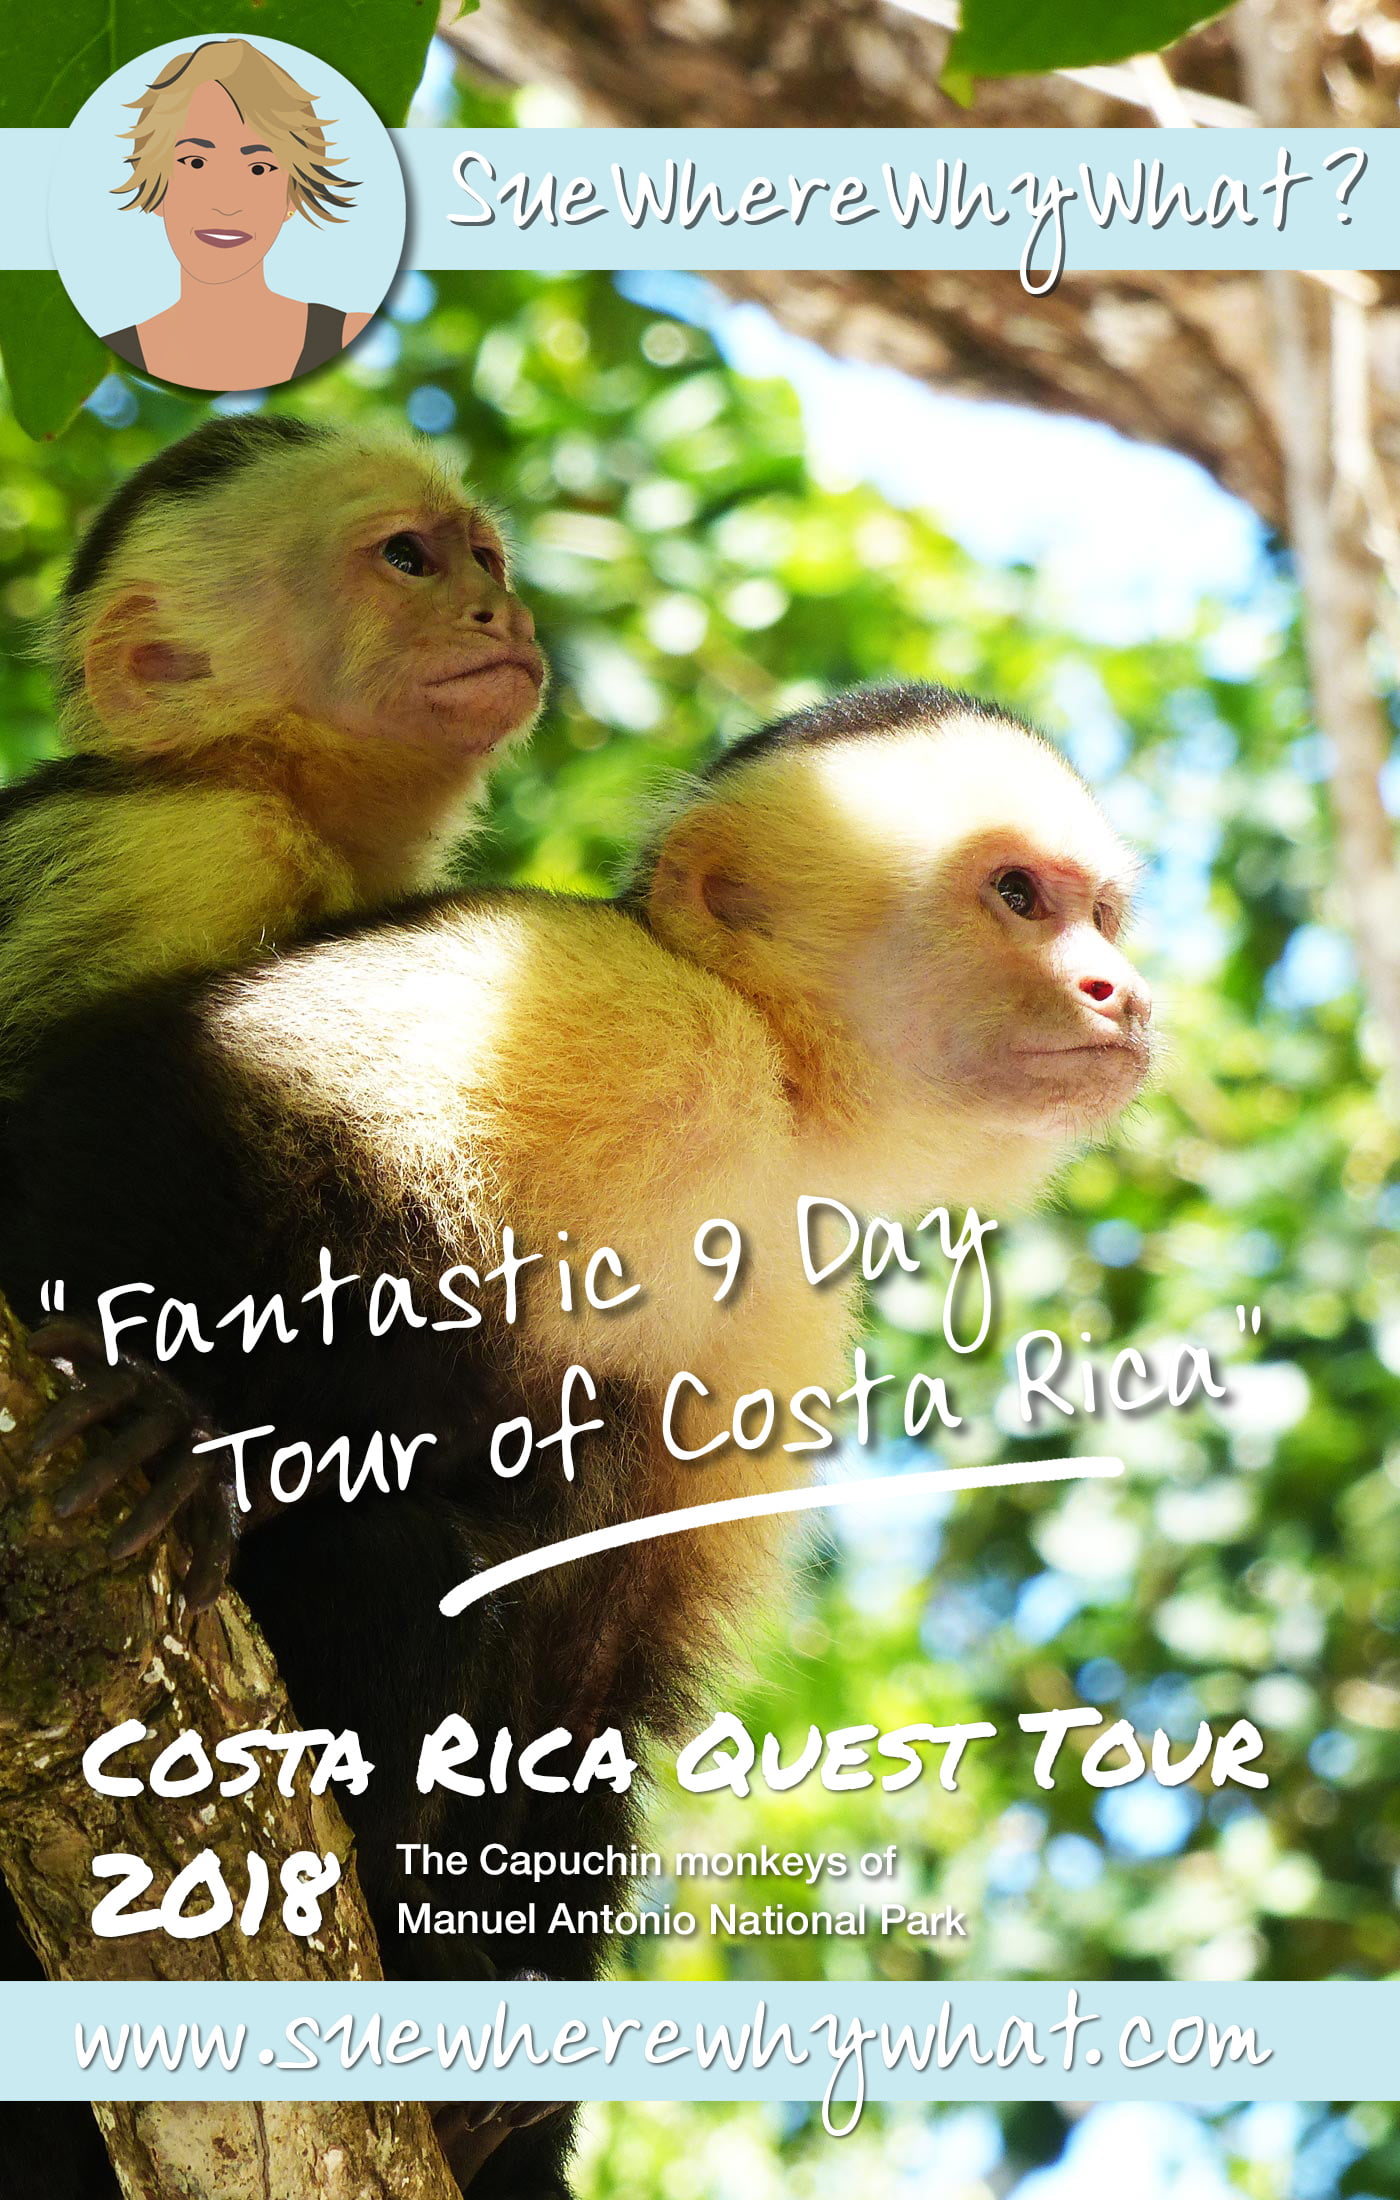 Fantastic 9 Day Tour of Costa Rica